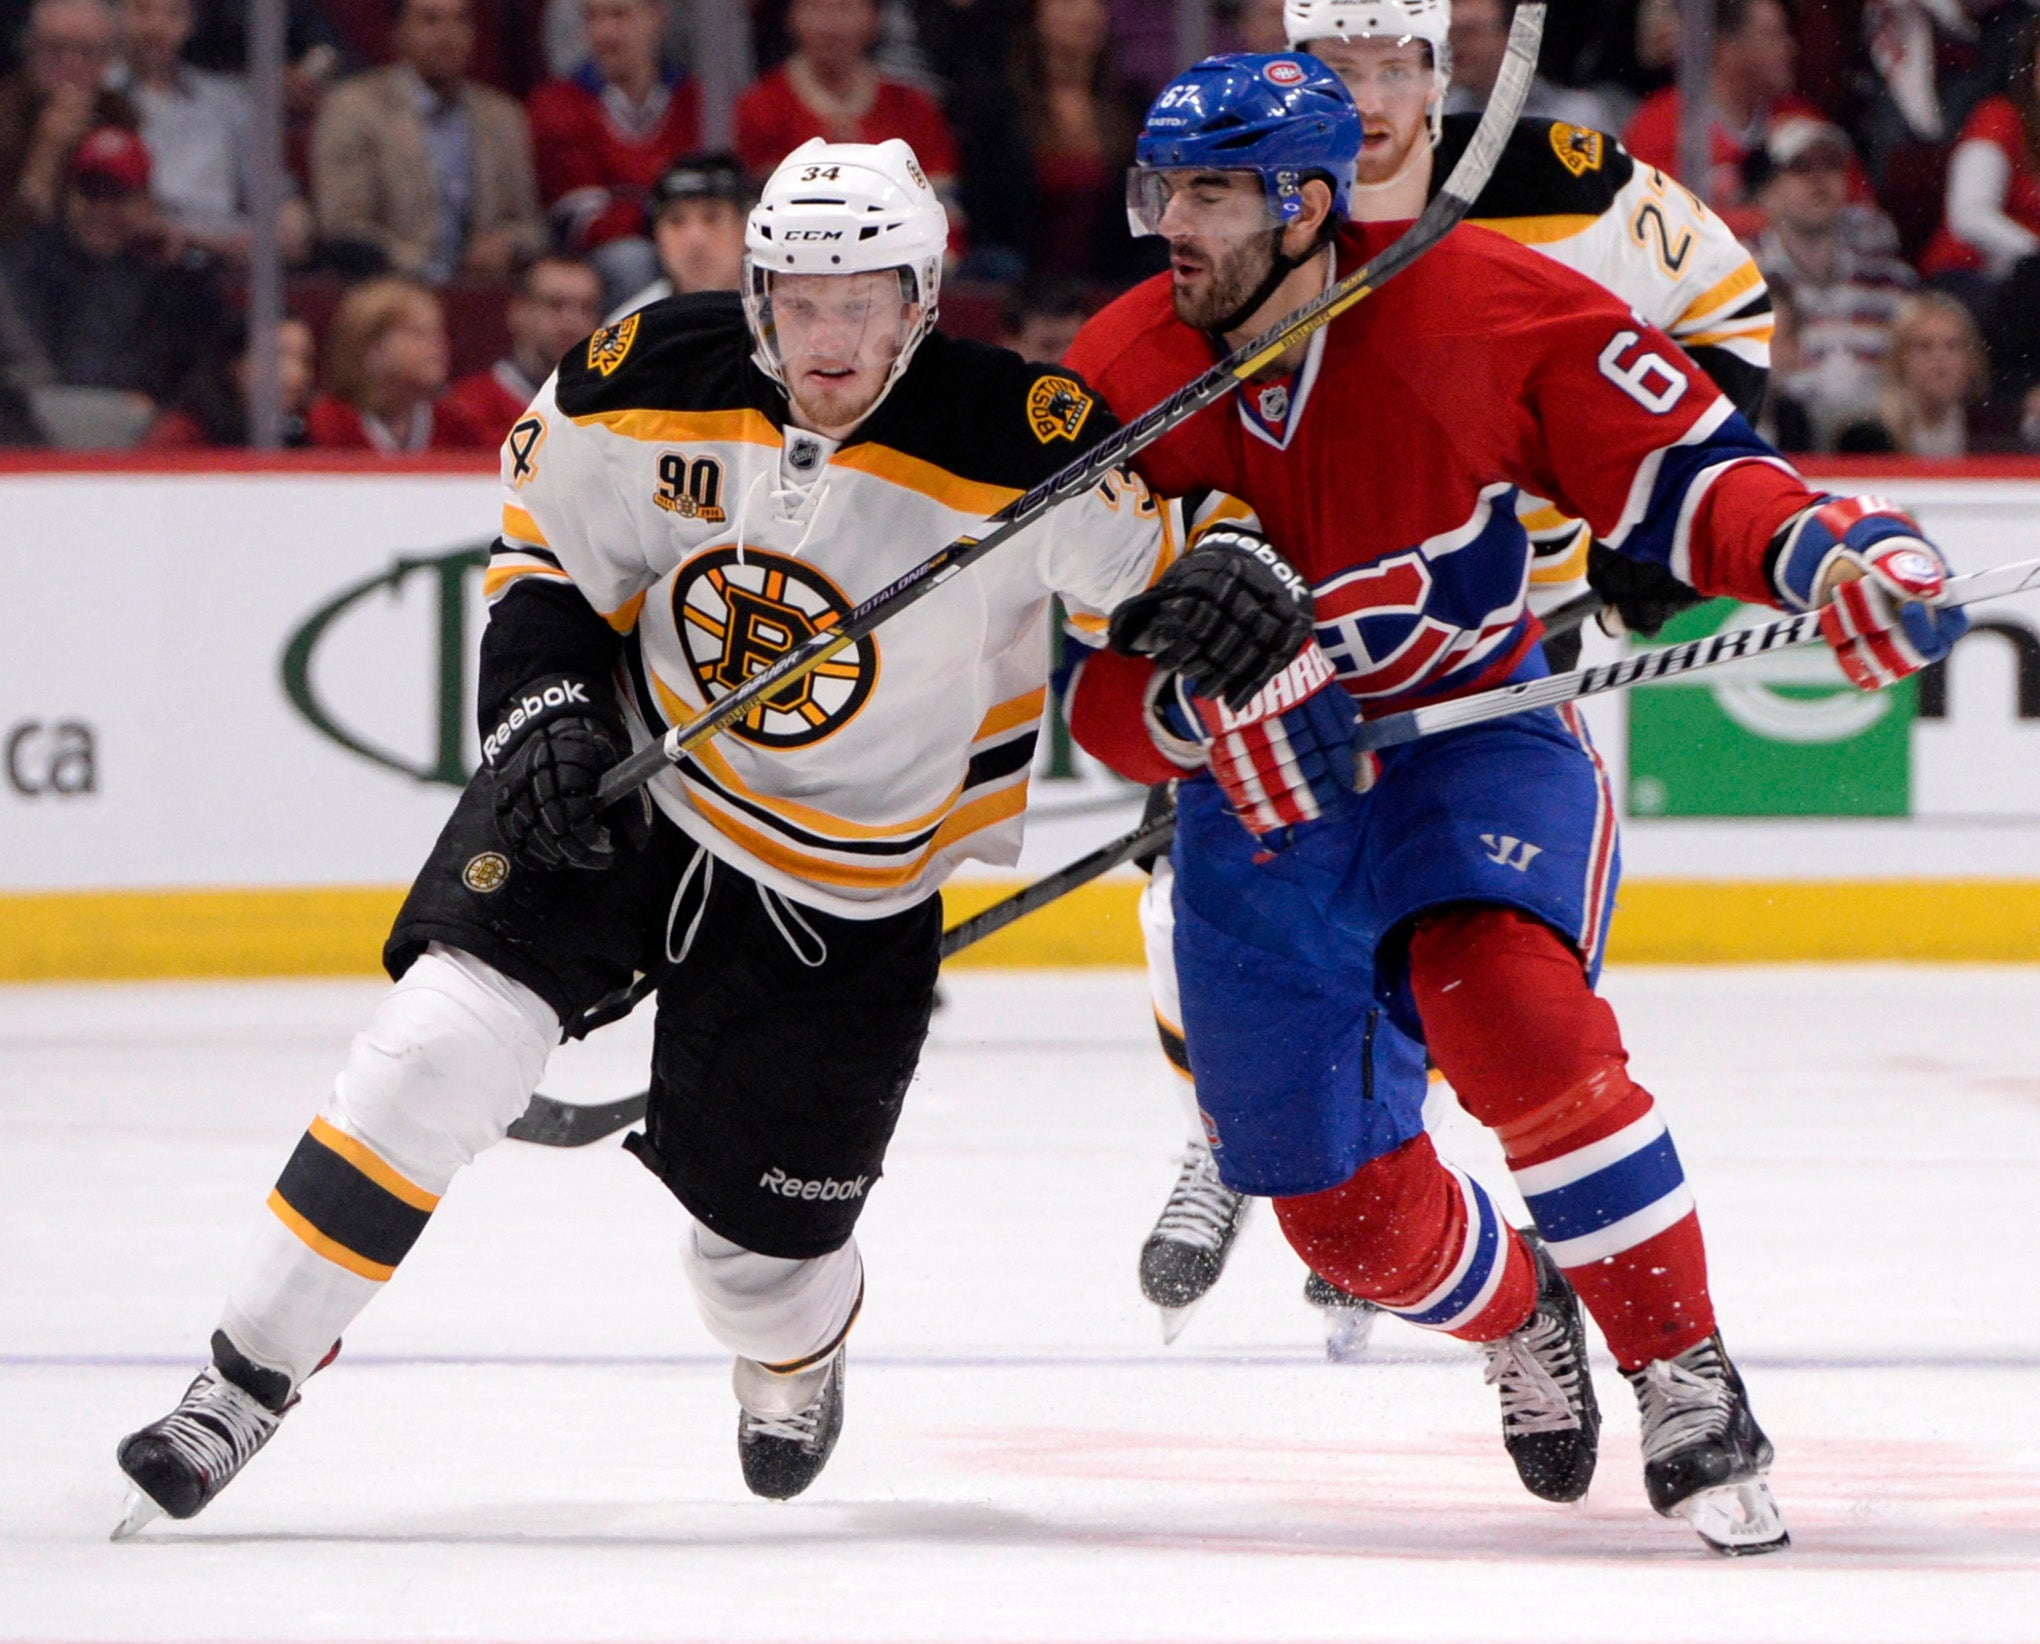 2014-05-07T013417Z_773361477_NOCID_RTRMADP_3_NHL-STANLEY-CUP-PLAYOFFS-BOSTON-BRUINS-AT-MONTREAL-CANADIENS.jpg